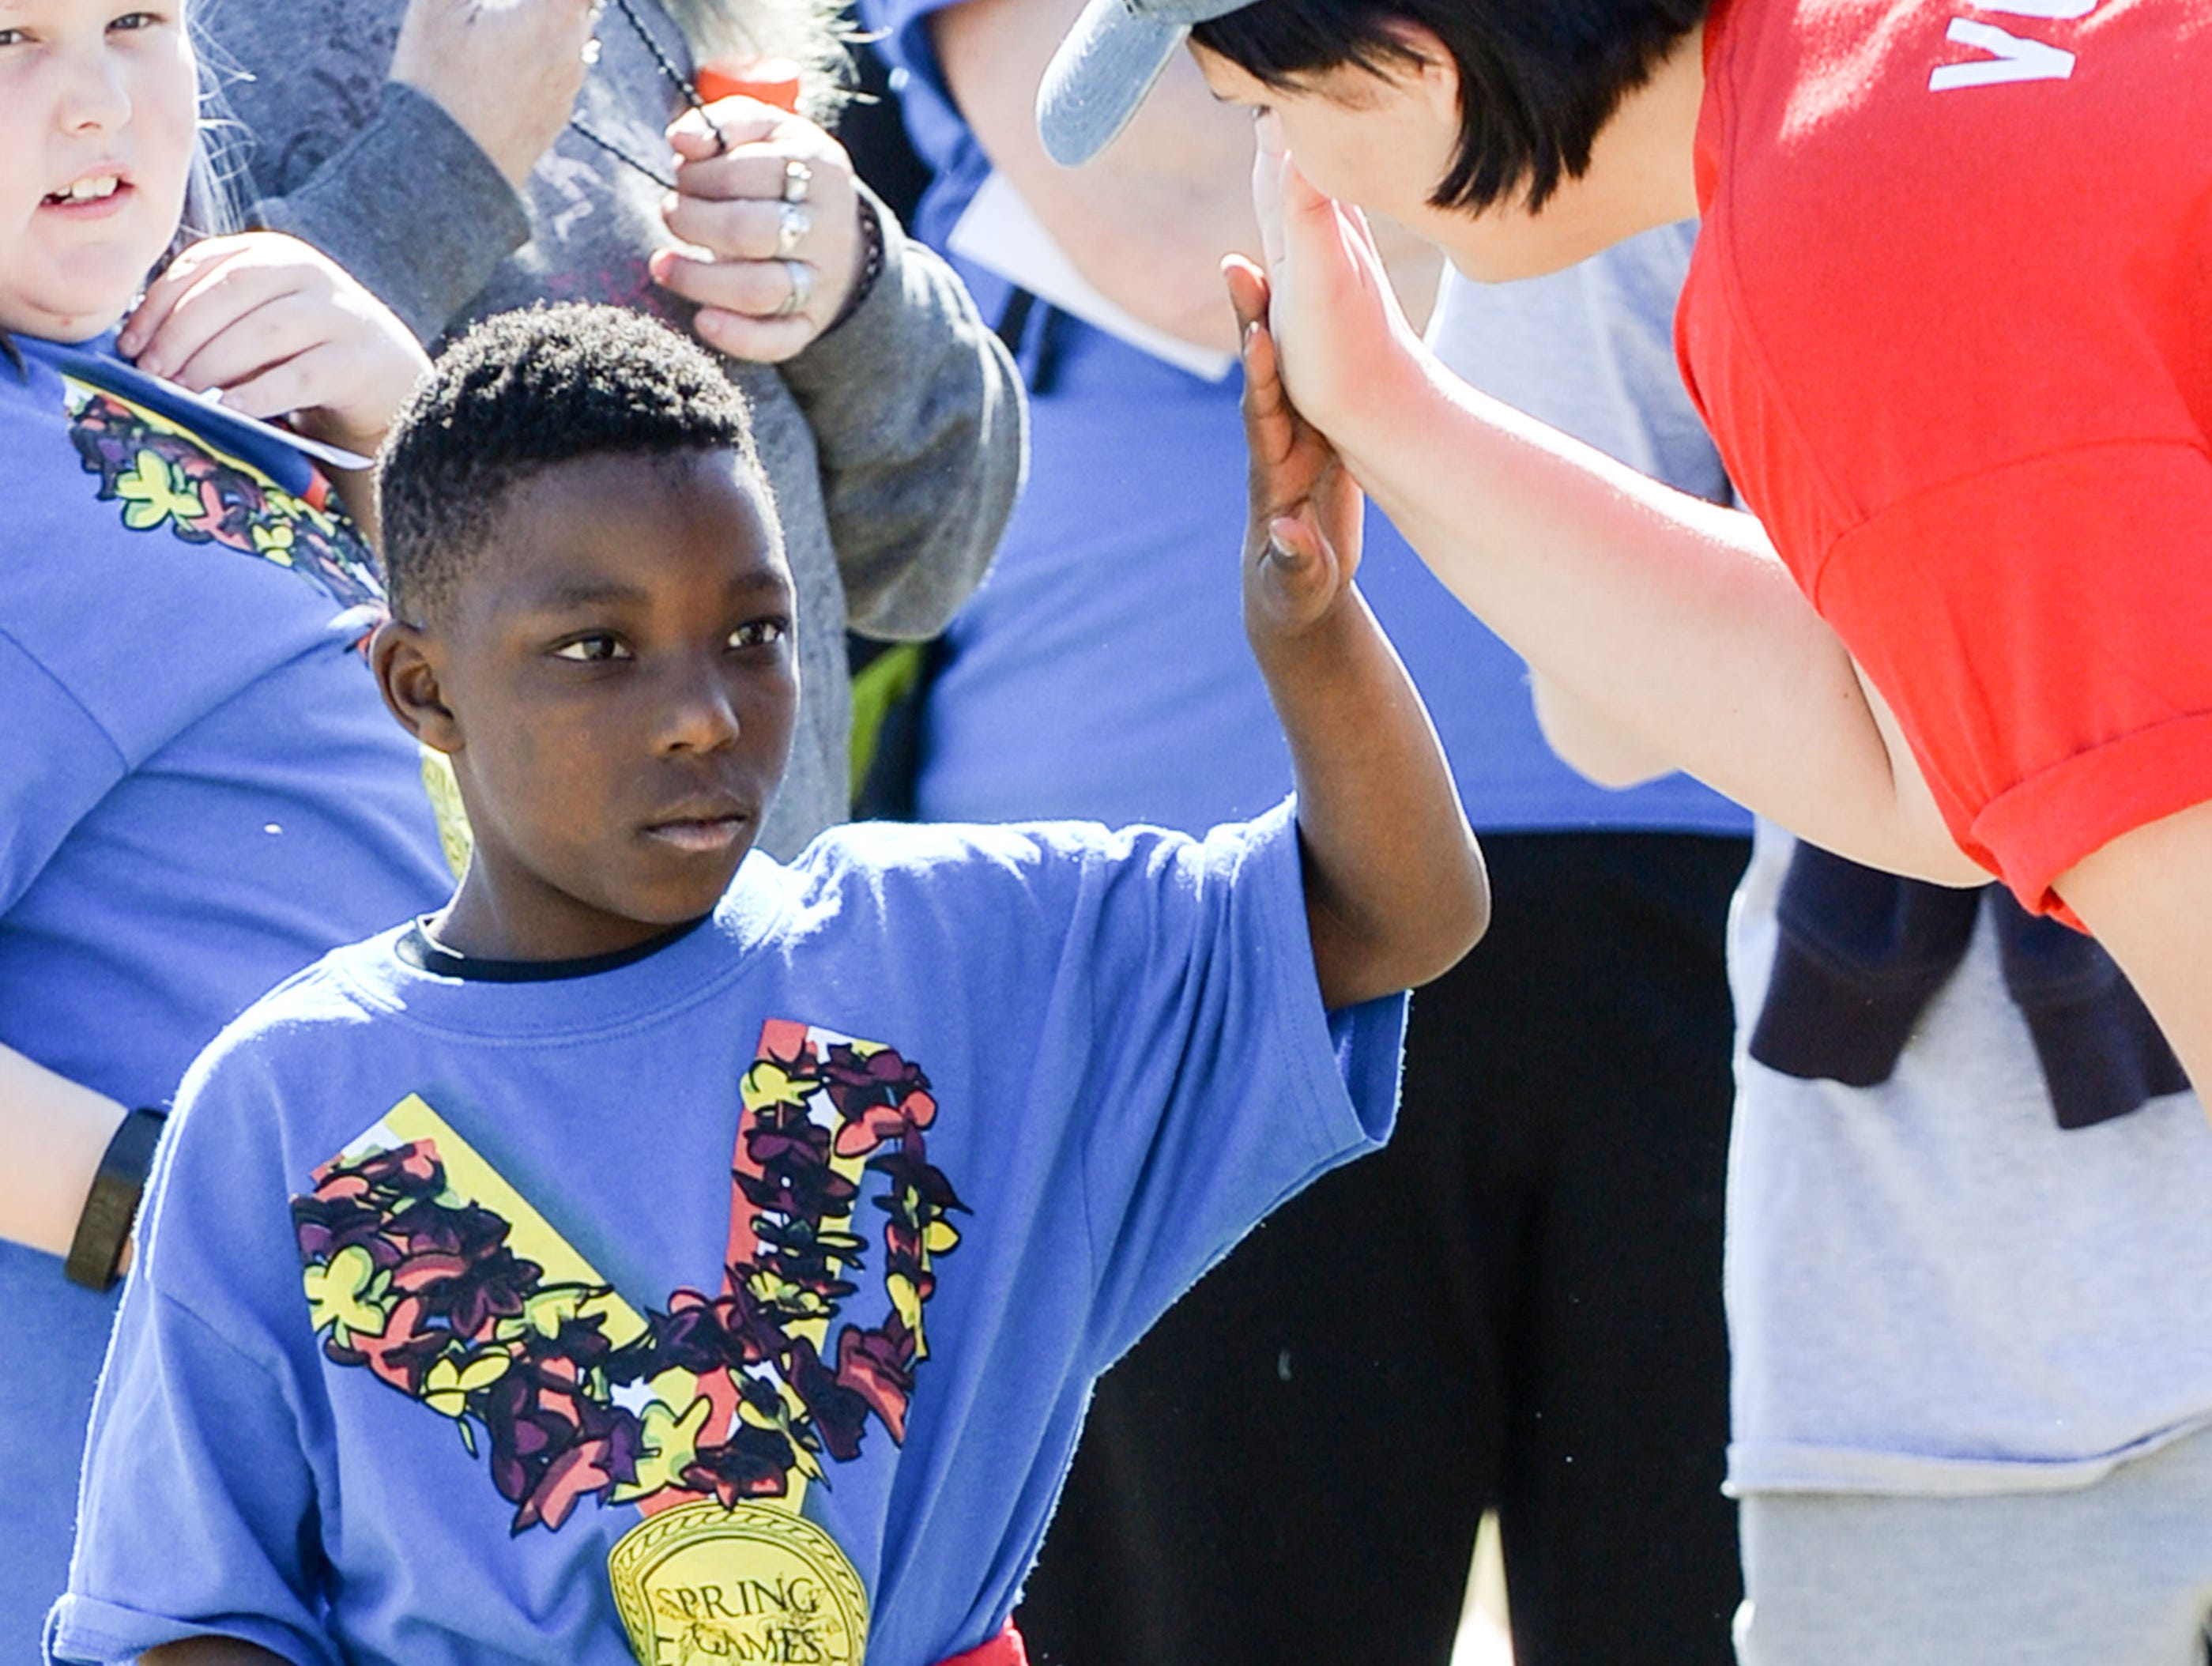 Xavier Woody of La France Elementary School, gives a high-five to volunteer Josie McCall, right, of Anderson University after throwing a softball during the Special Olympics South Carolina Area 14 Spring Games at Marlee Gambrell field at Belton-Honea Path High School Wednesday.